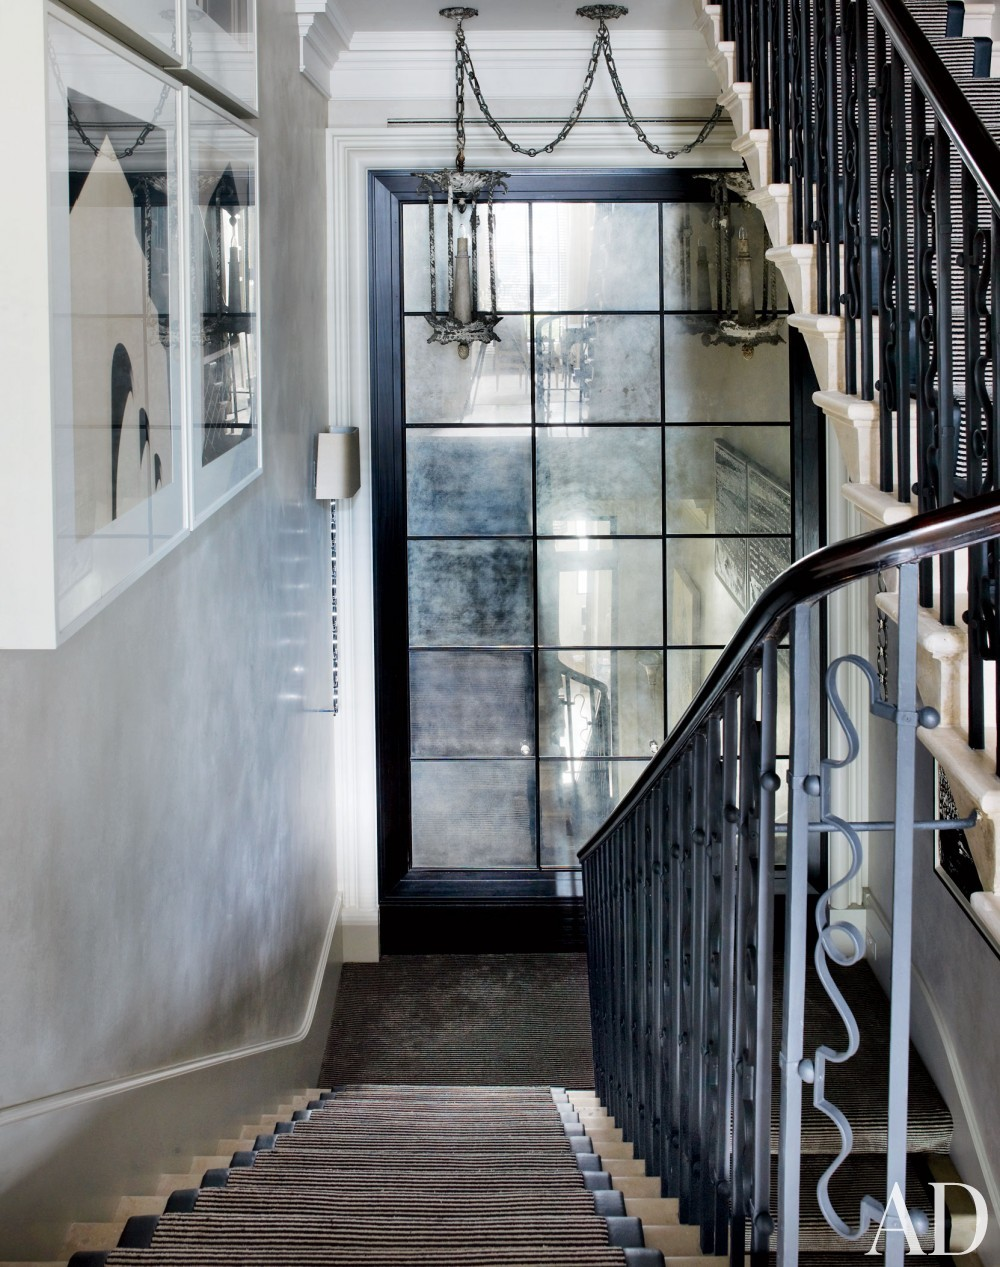 Contemporary Staircase/Hallway by Hubert Zandberg and Jan Swanepoel in London, England